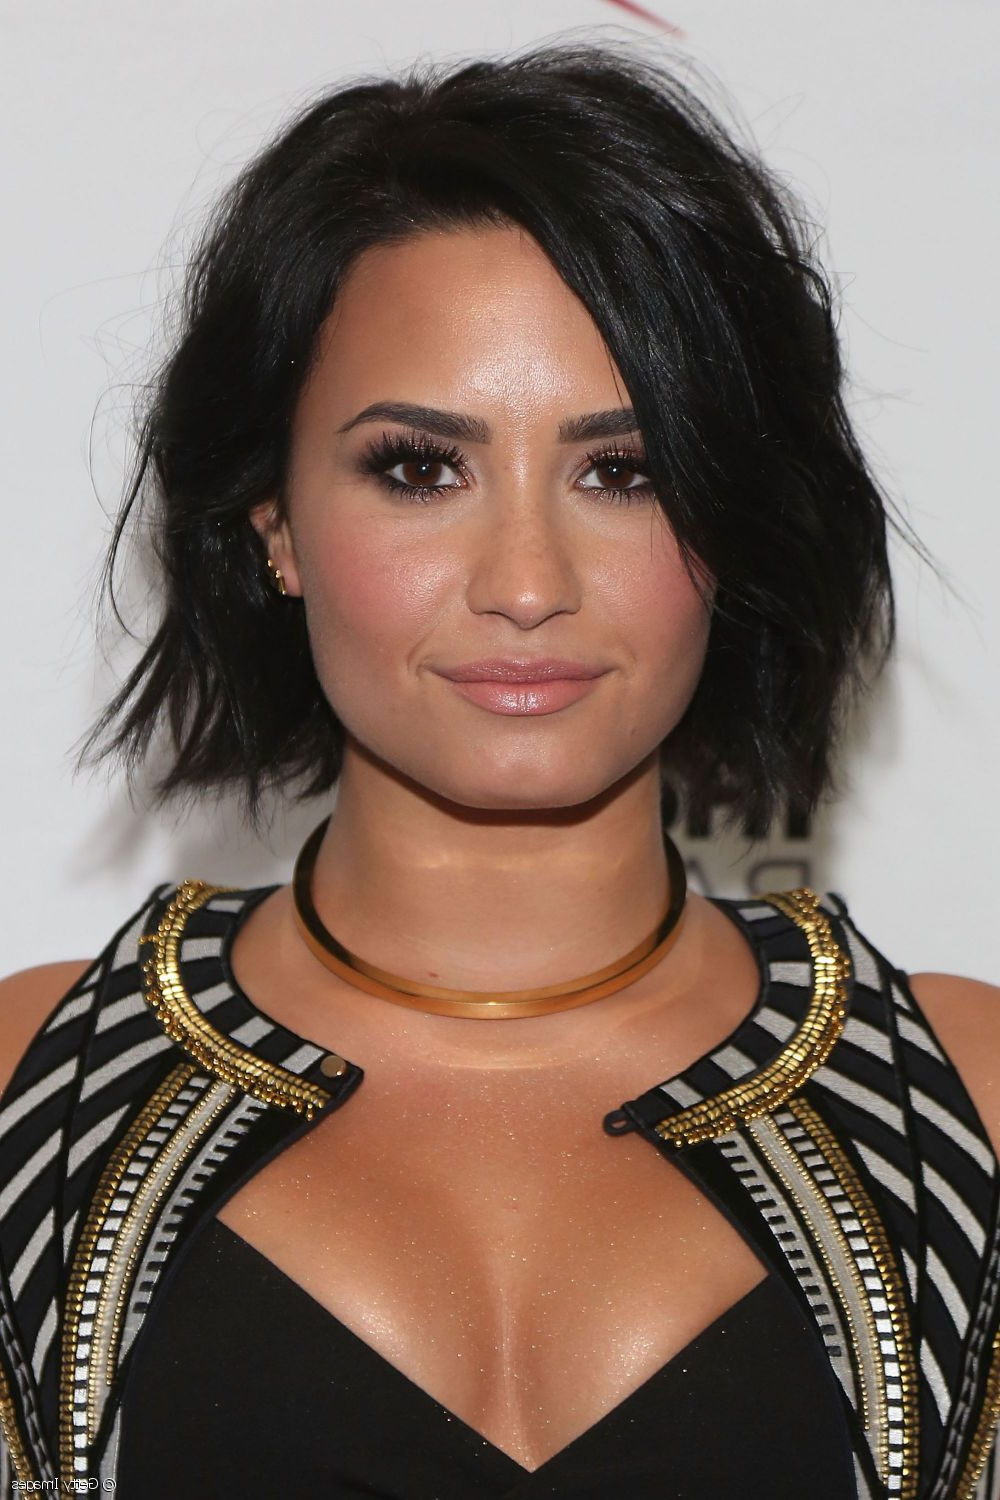 Demi Lovato's Summer Beauty: Wet Look Hair And Bold Lipstick pertaining to Demi Lovato Short Hairstyles